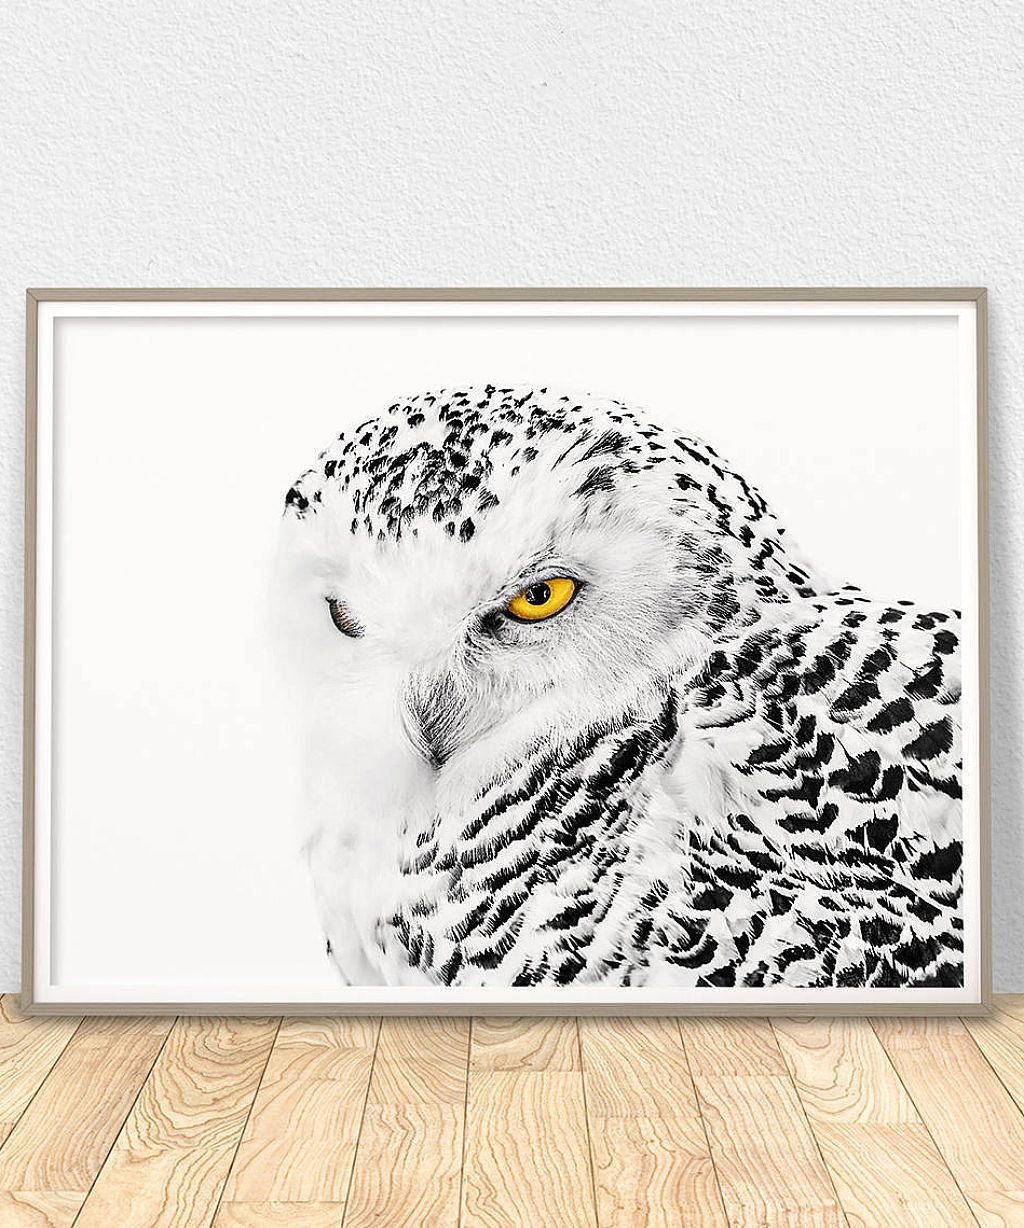 White Owl Poster Printable Wall Art Owl Decor Snowy Owl Etsy Owl Nursery Art Owl Wall Art Printable Owl Wall Art